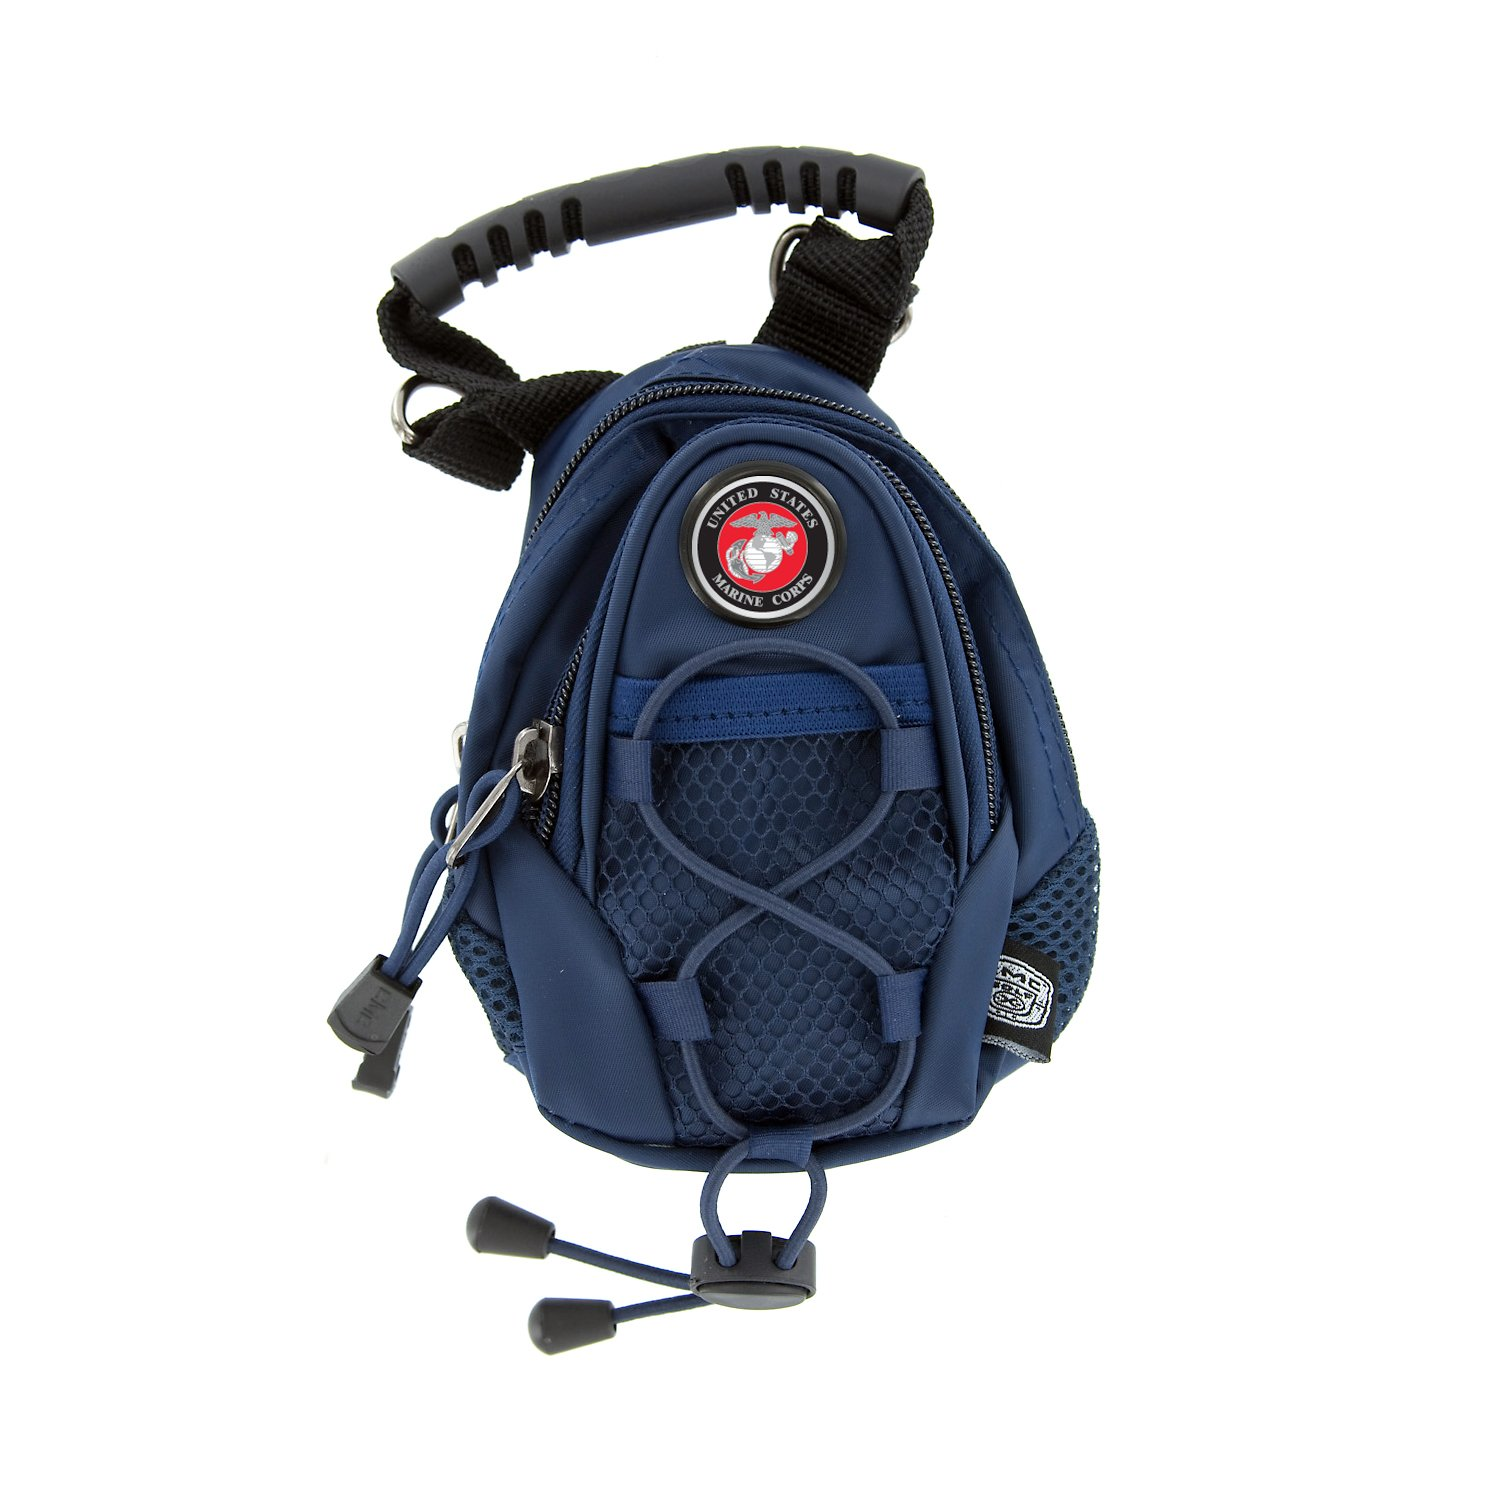 CMC Golf海兵隊Mini Day Pack B004WO0VLS レッド レッド